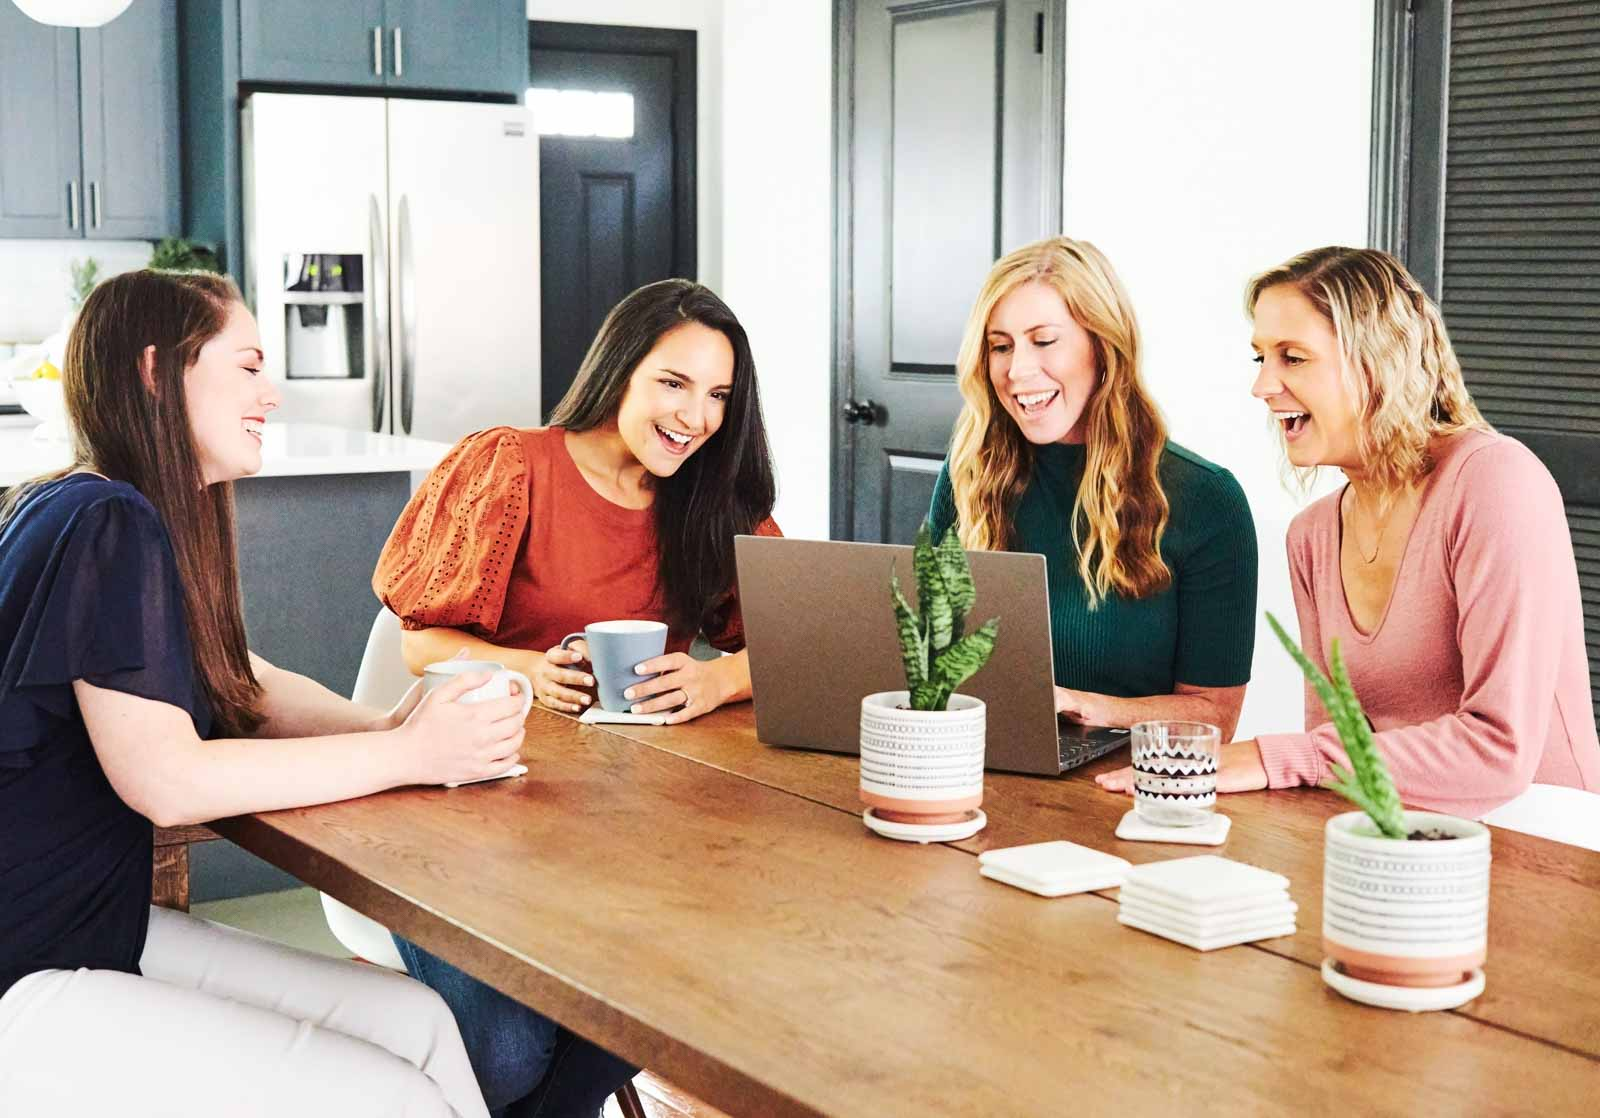 women-working-at-table